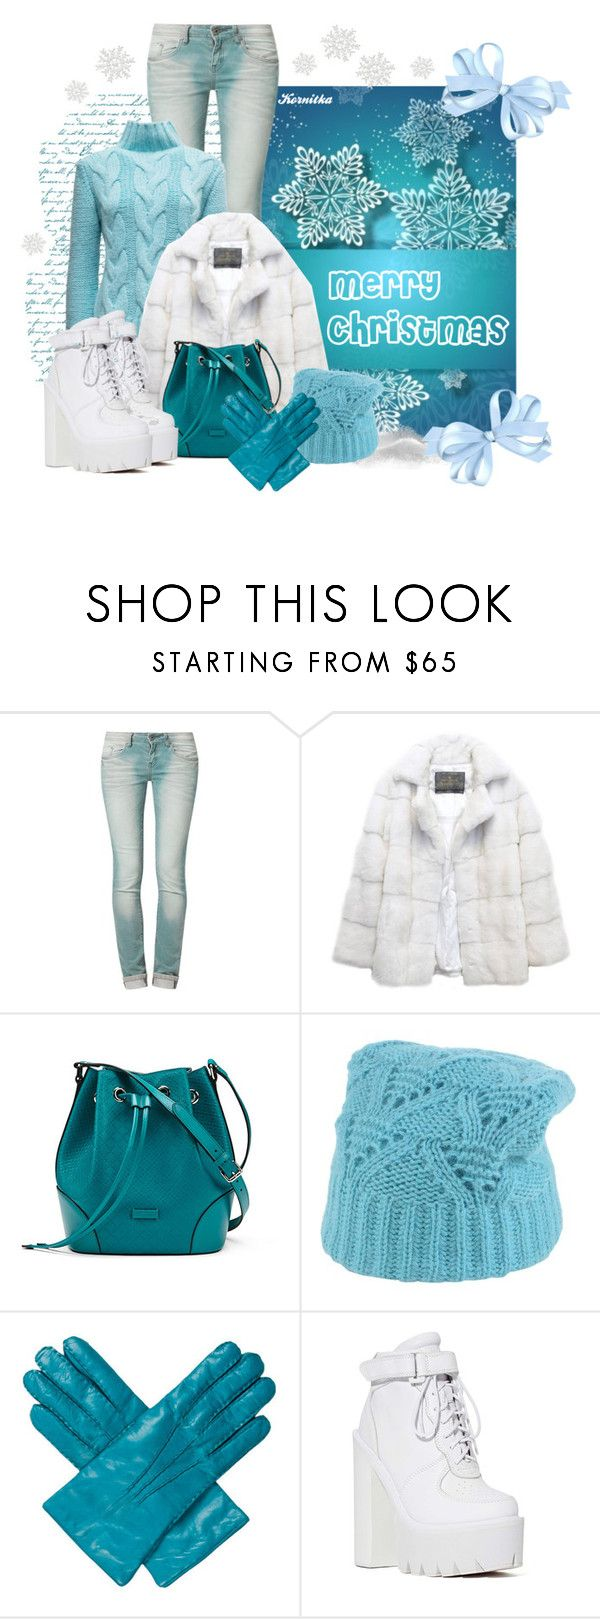 """nr 628 / Merry Christmas"" by kornitka ❤ liked on Polyvore featuring One Green Elephant, Brooks, Lilly e Violetta, Gucci, Tak.Ori, Marc Jacobs and Jeffrey Campbell"